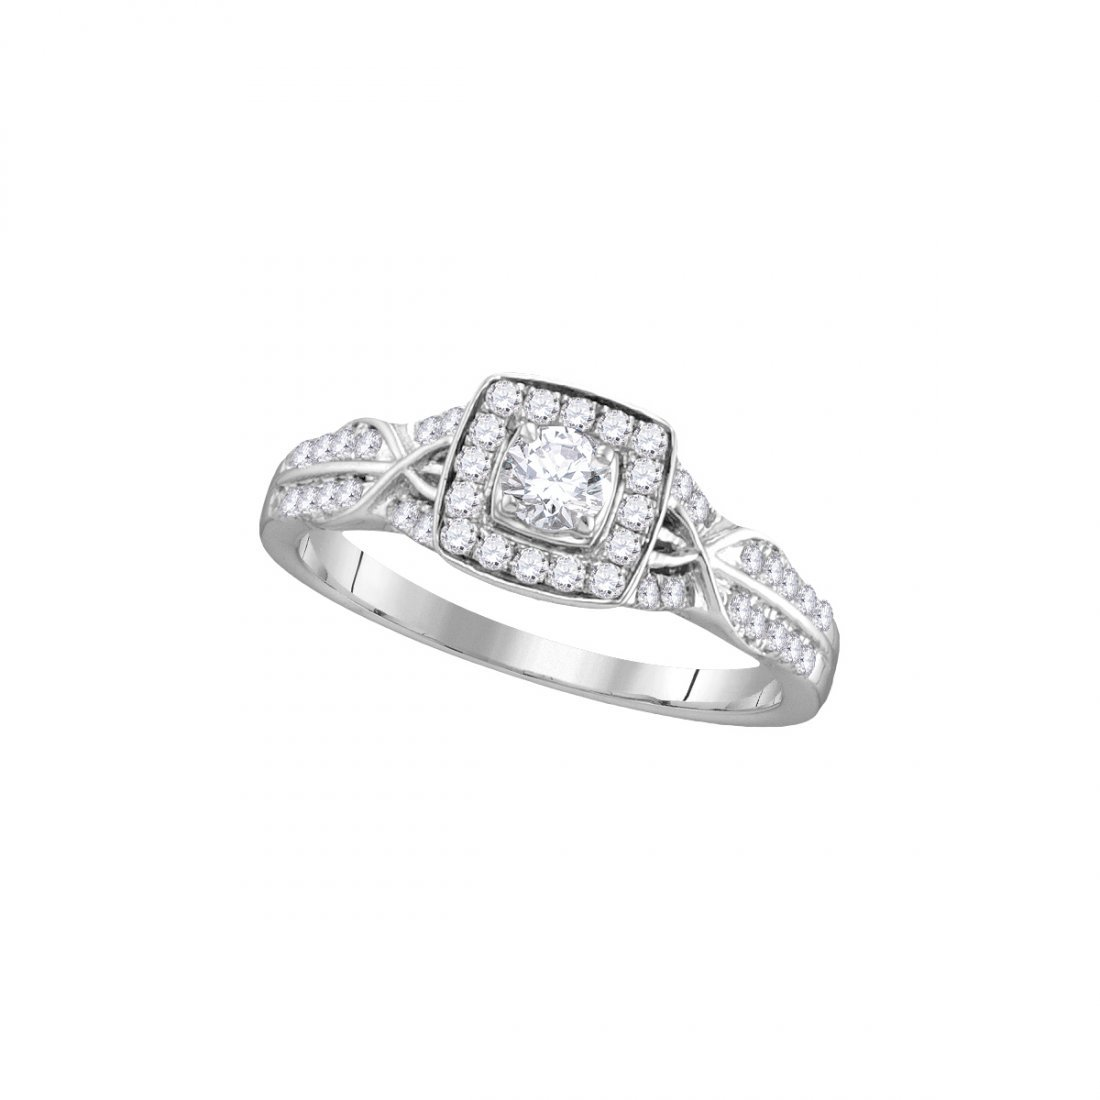 Natural 0.50 ctw Diamond Bridal Ring 14K White Gold -